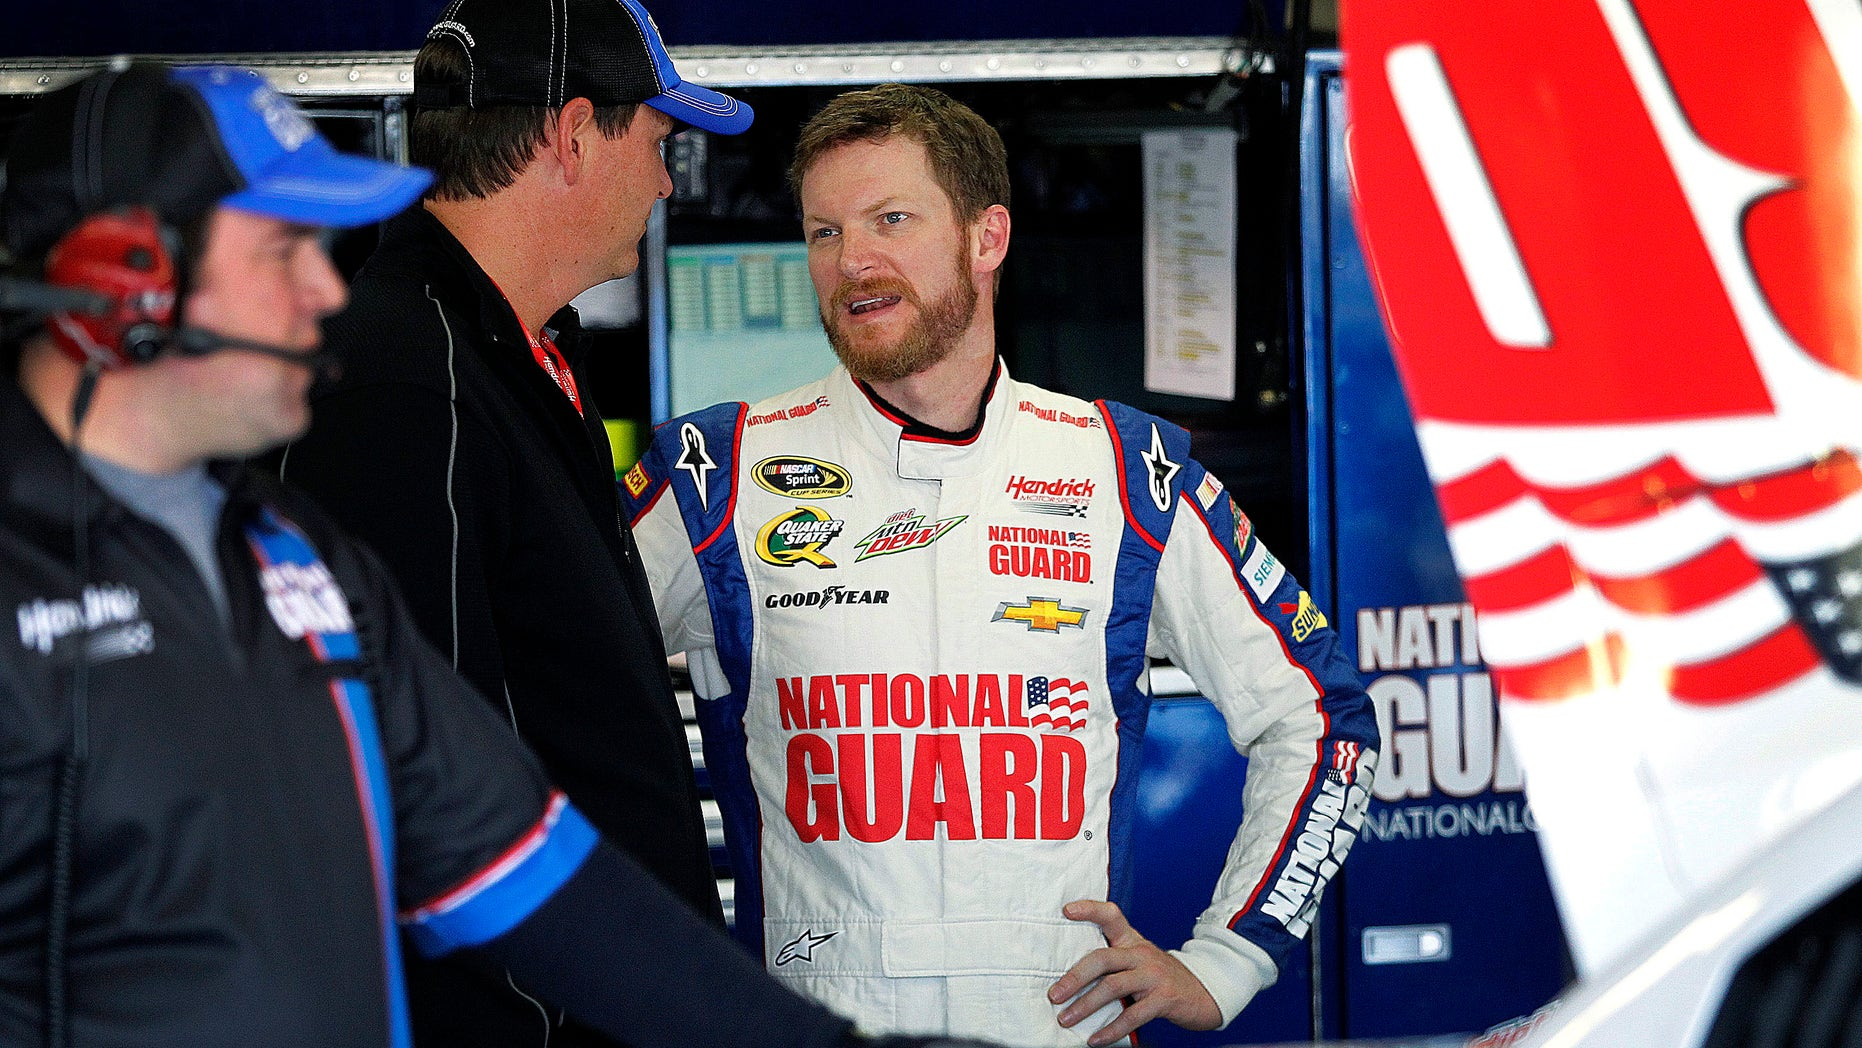 Dale Earnhardt Jr., talks with his team during testing at Texas Motor Speedway, Thursday, April 11, 2013, in Fort Worth,Texas. The NASCAR Sprint Cup Series NRA 500 auto race is scheduled to run Saturday, April 13. (AP Photo/The Fort Worth Star-Telegram, Ron Jenkins)  MAGS OUT; (FORT WORTH WEEKLY, 360 WEST); INTERNET OUT